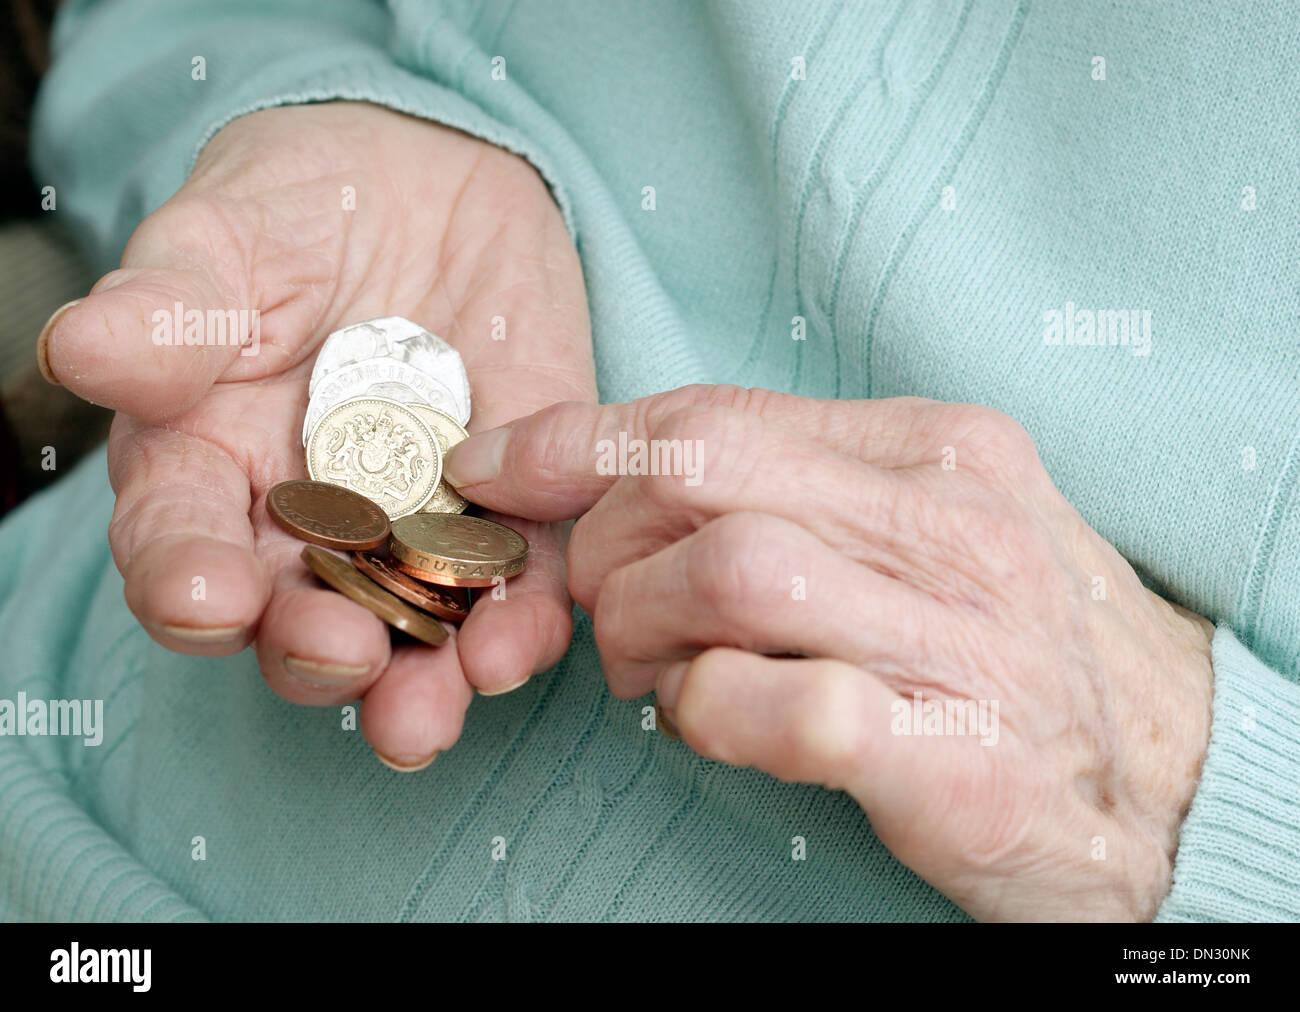 Elderly woman holding a mixture of coins (going through money in the age of austerity) - Stock Image